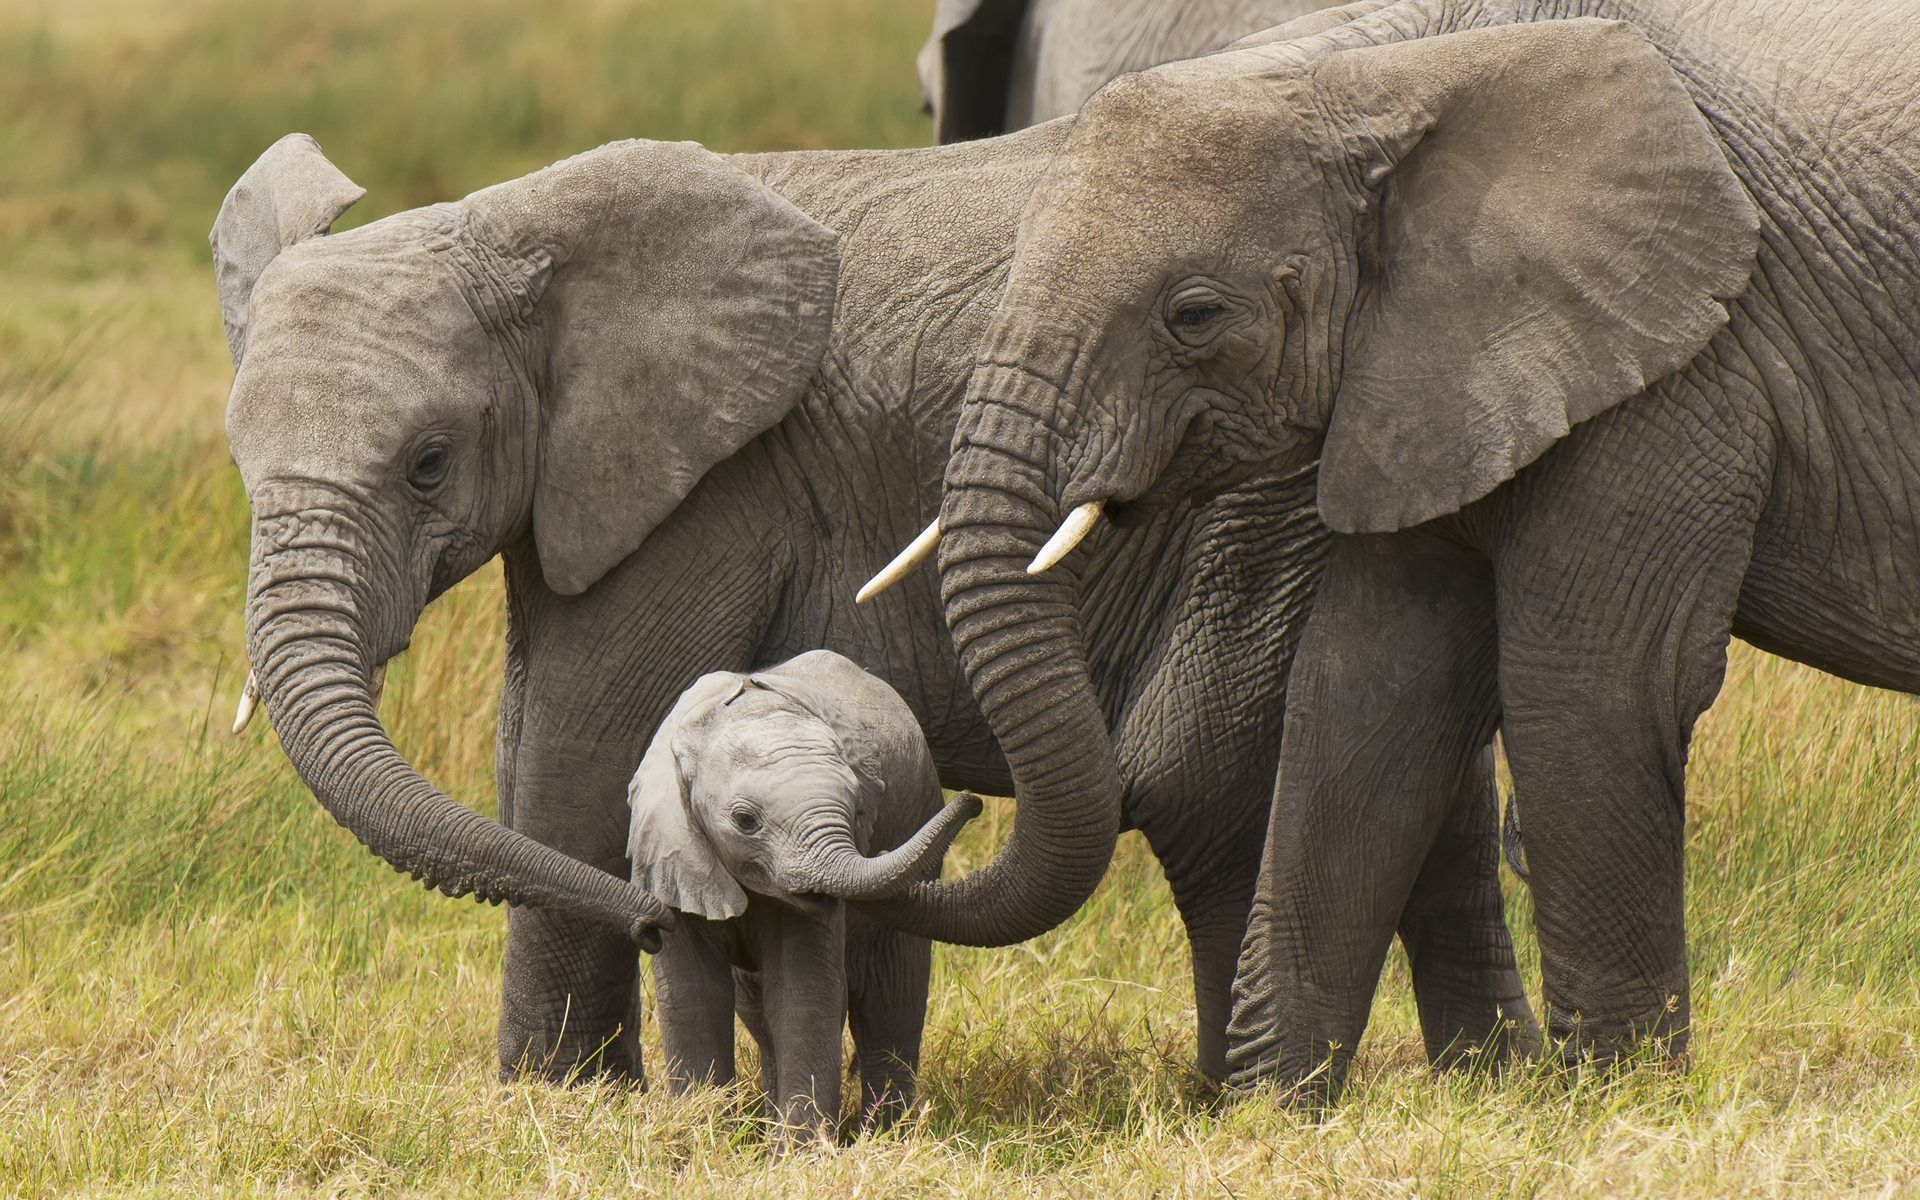 Cute Baby Elephant Wallpapers HD | Disney | Fondo de pantalla de elefante